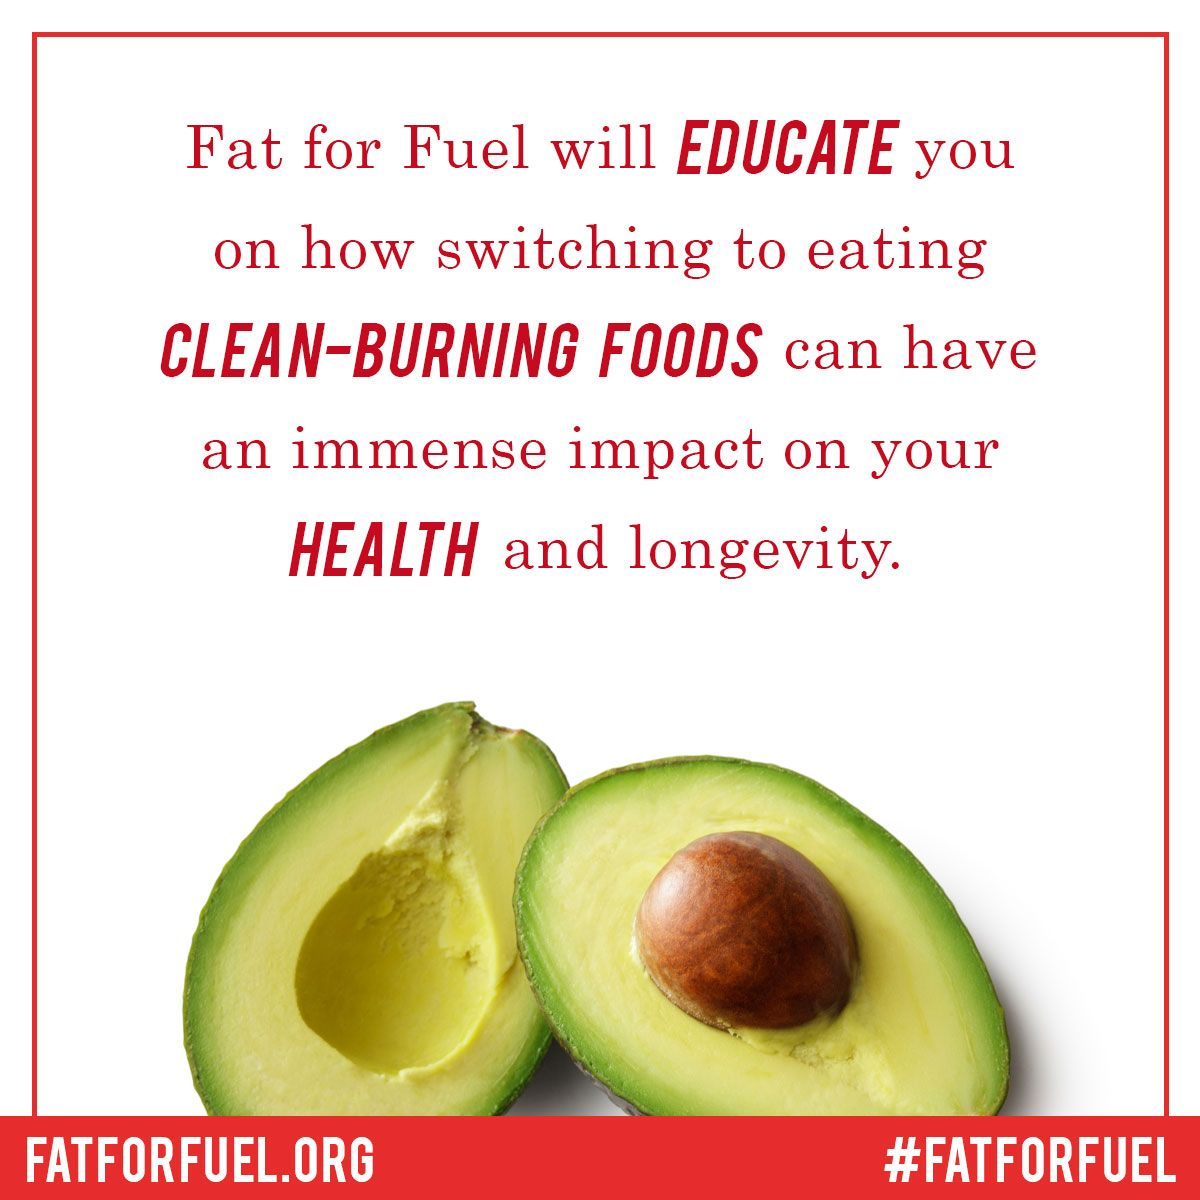 Get rewarded when you pre-order my newest book #FatforFuel. #ketogenic https://t.co/uja6fWZz6e https://t.co/aBdqoWHNZc